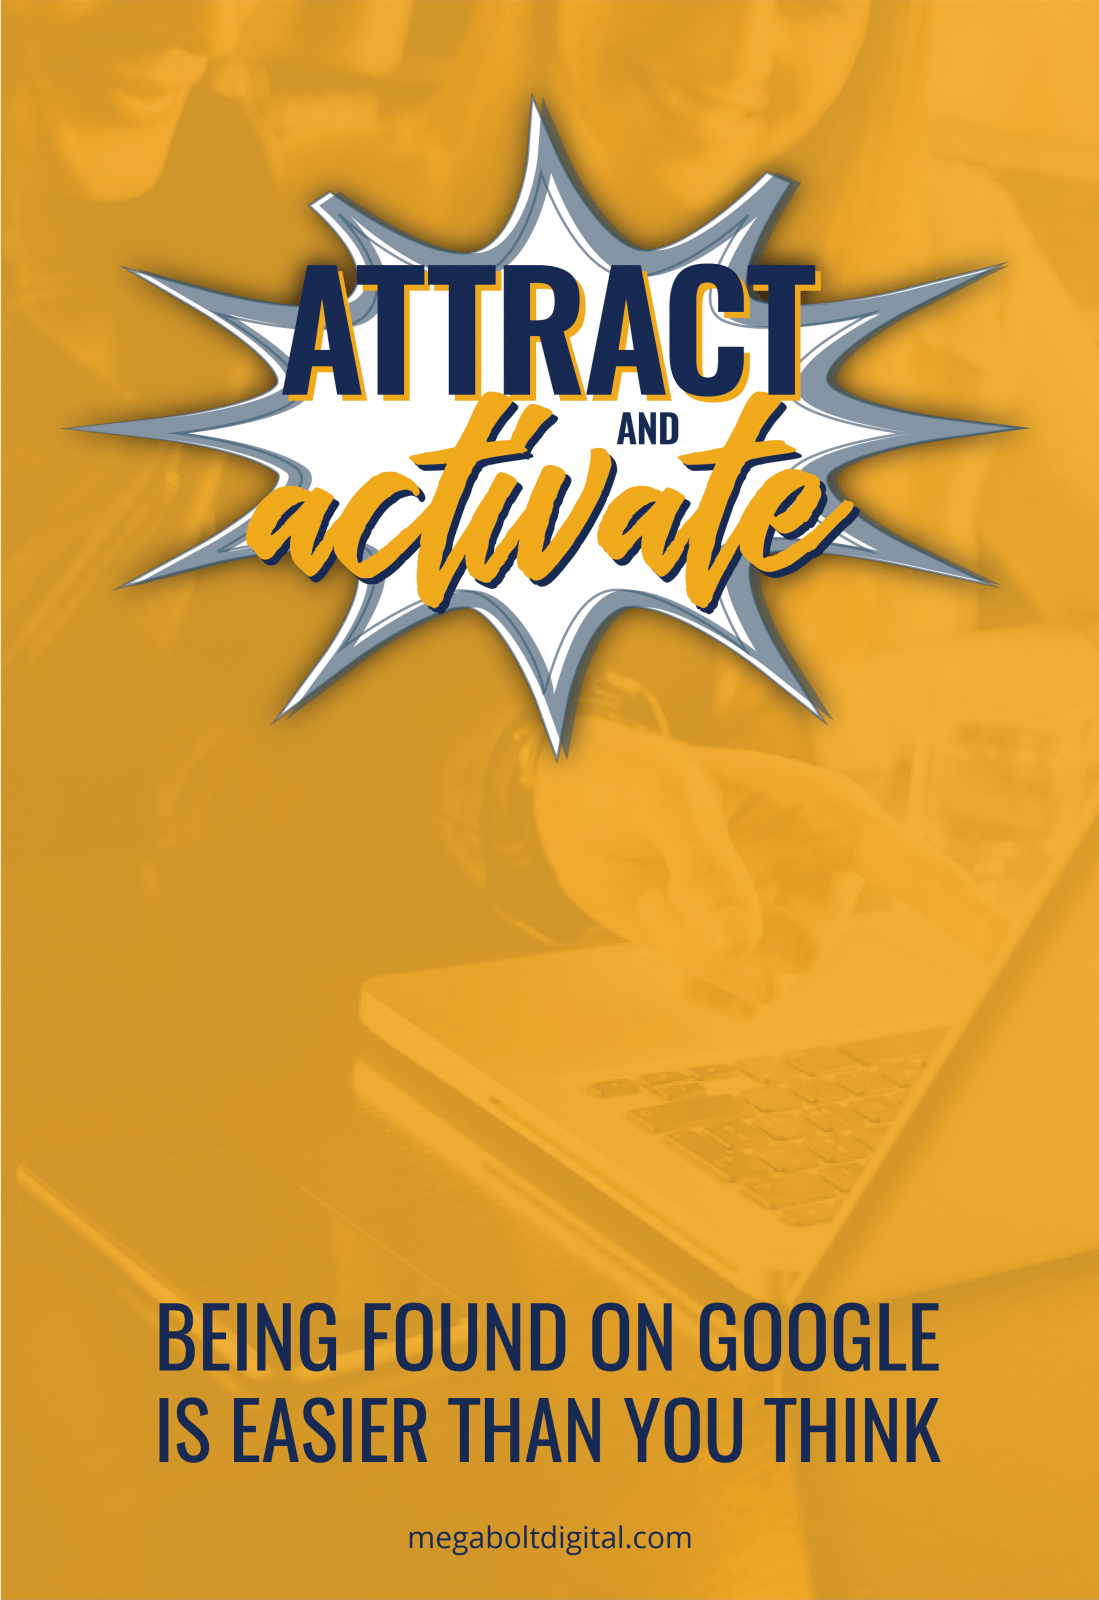 Attract & Activate SEO course & membership